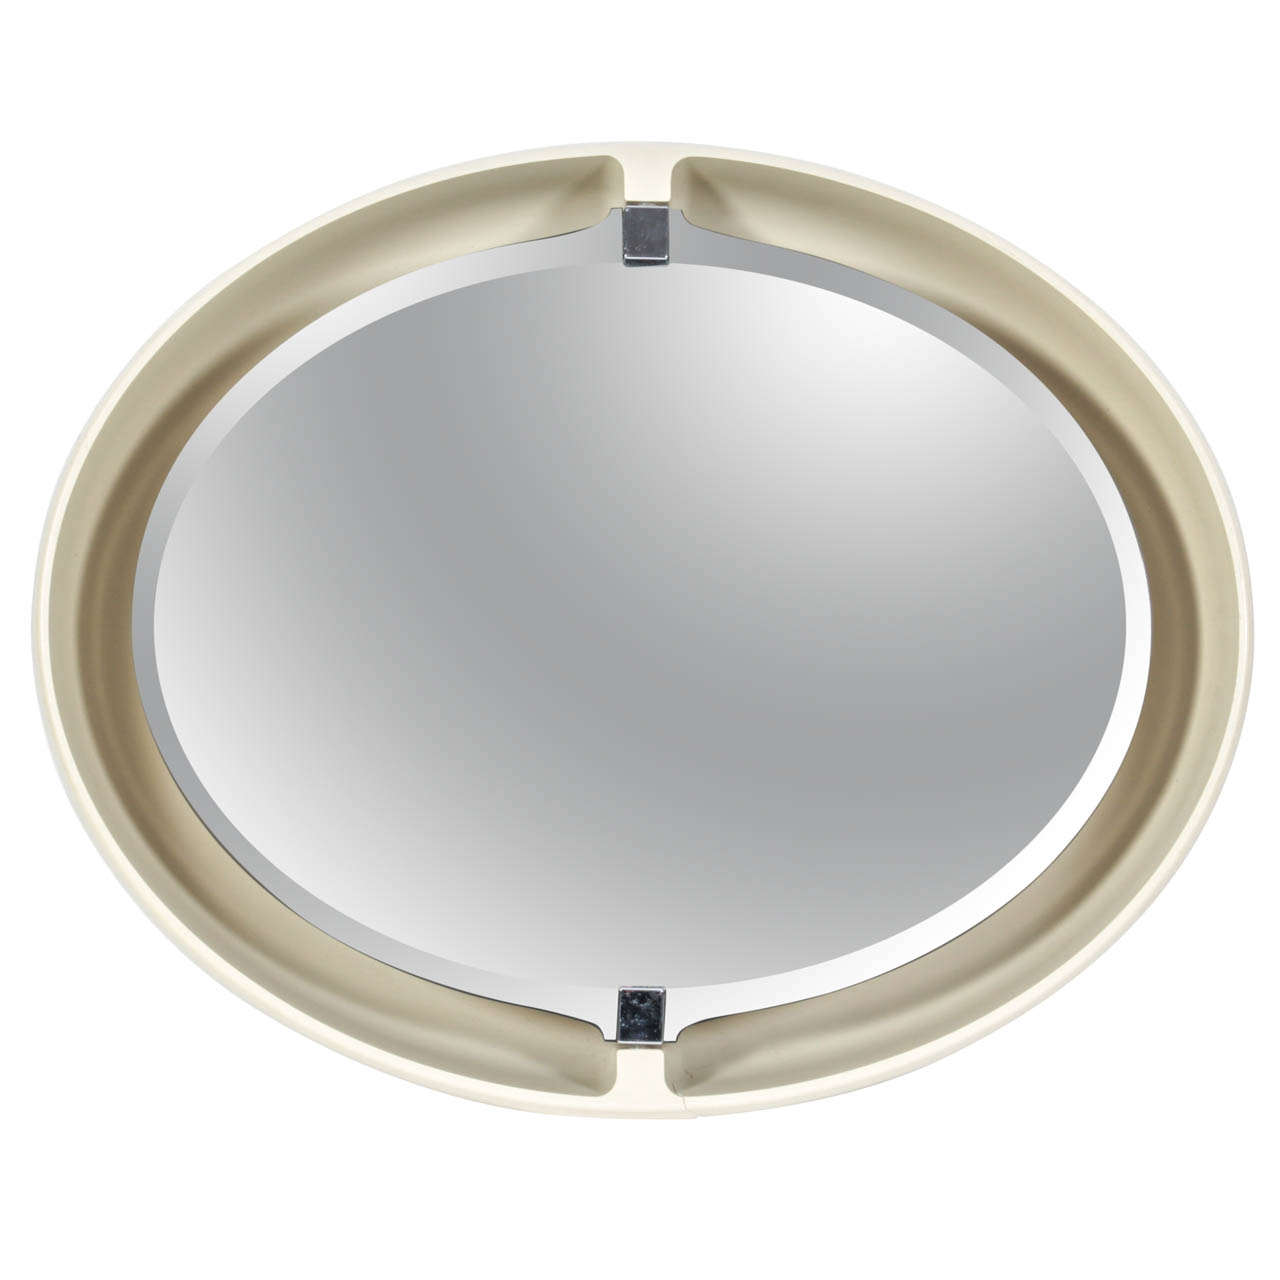 1970s Allibert French Pivoting & Lighted Oval Mirror